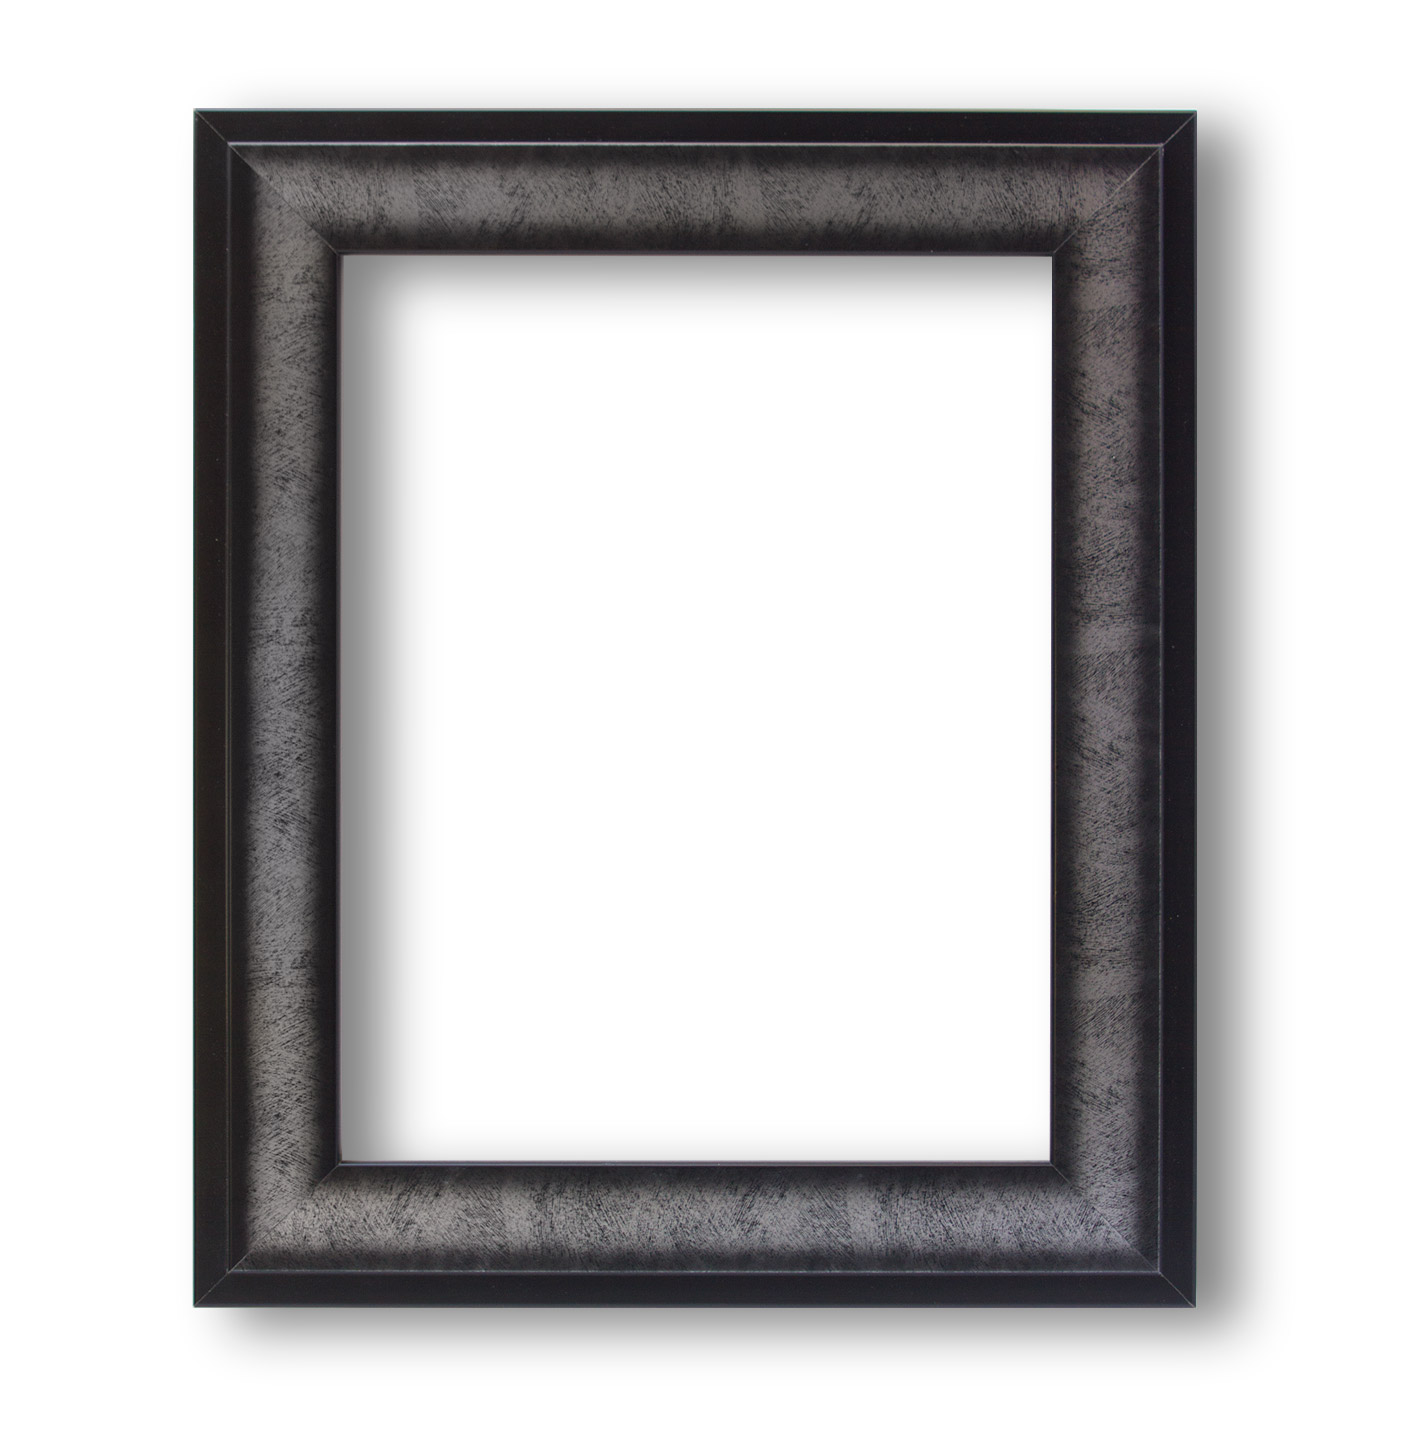 FRAME-5 (brushed silver)